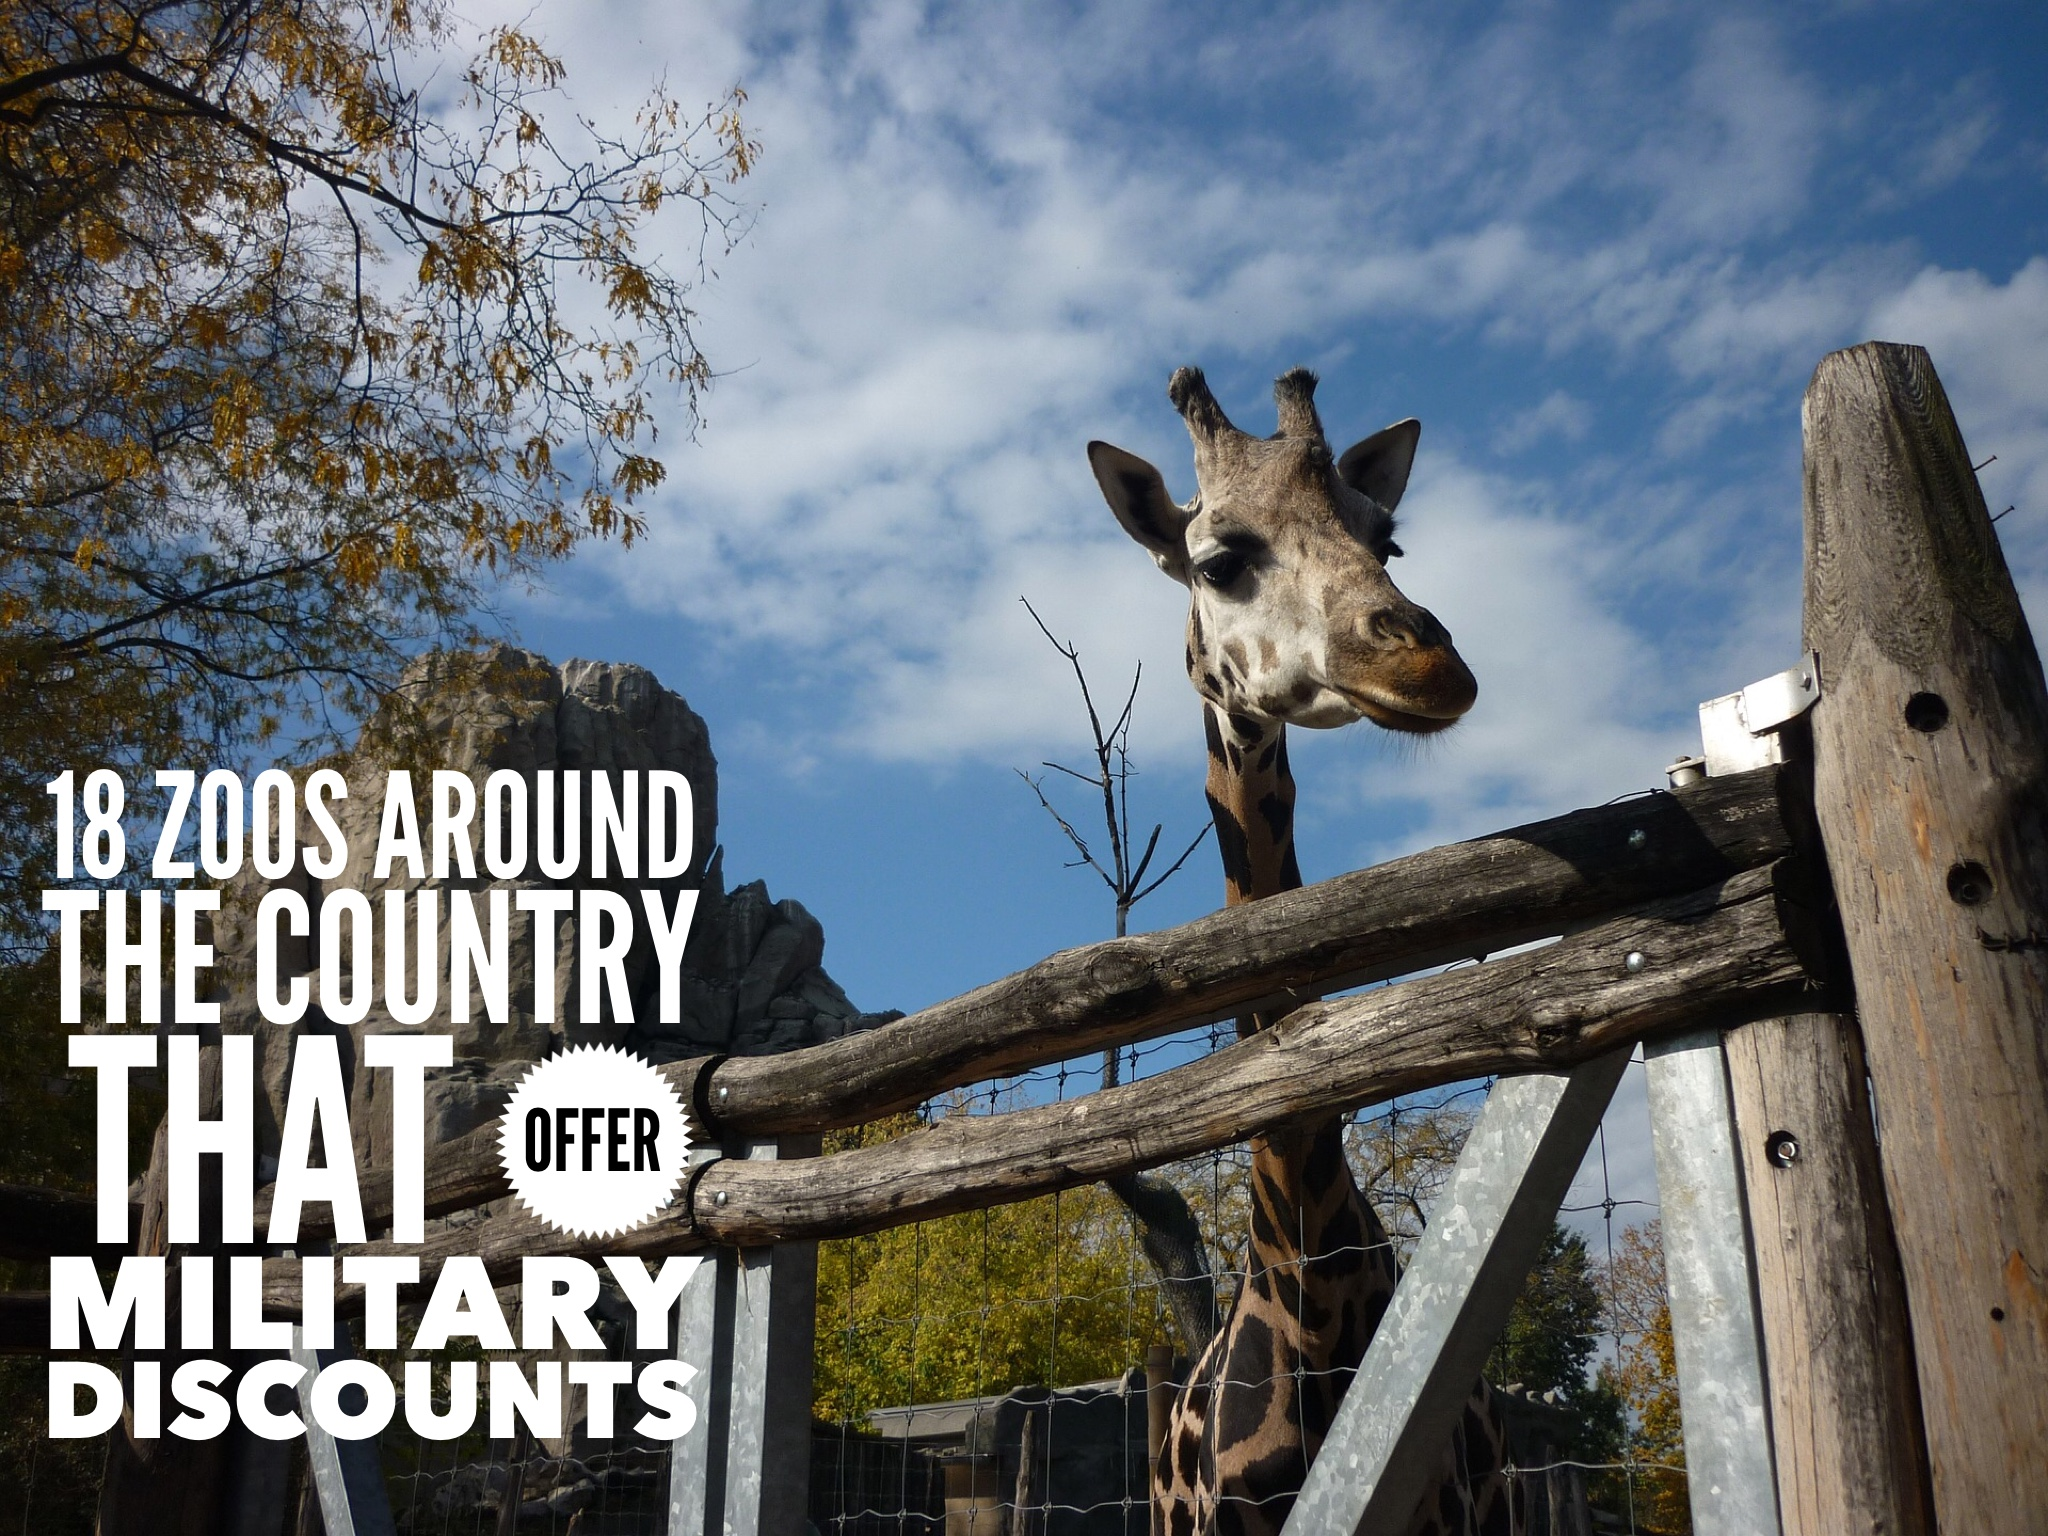 18 Zoos Around The Country That Offer Military Discounts